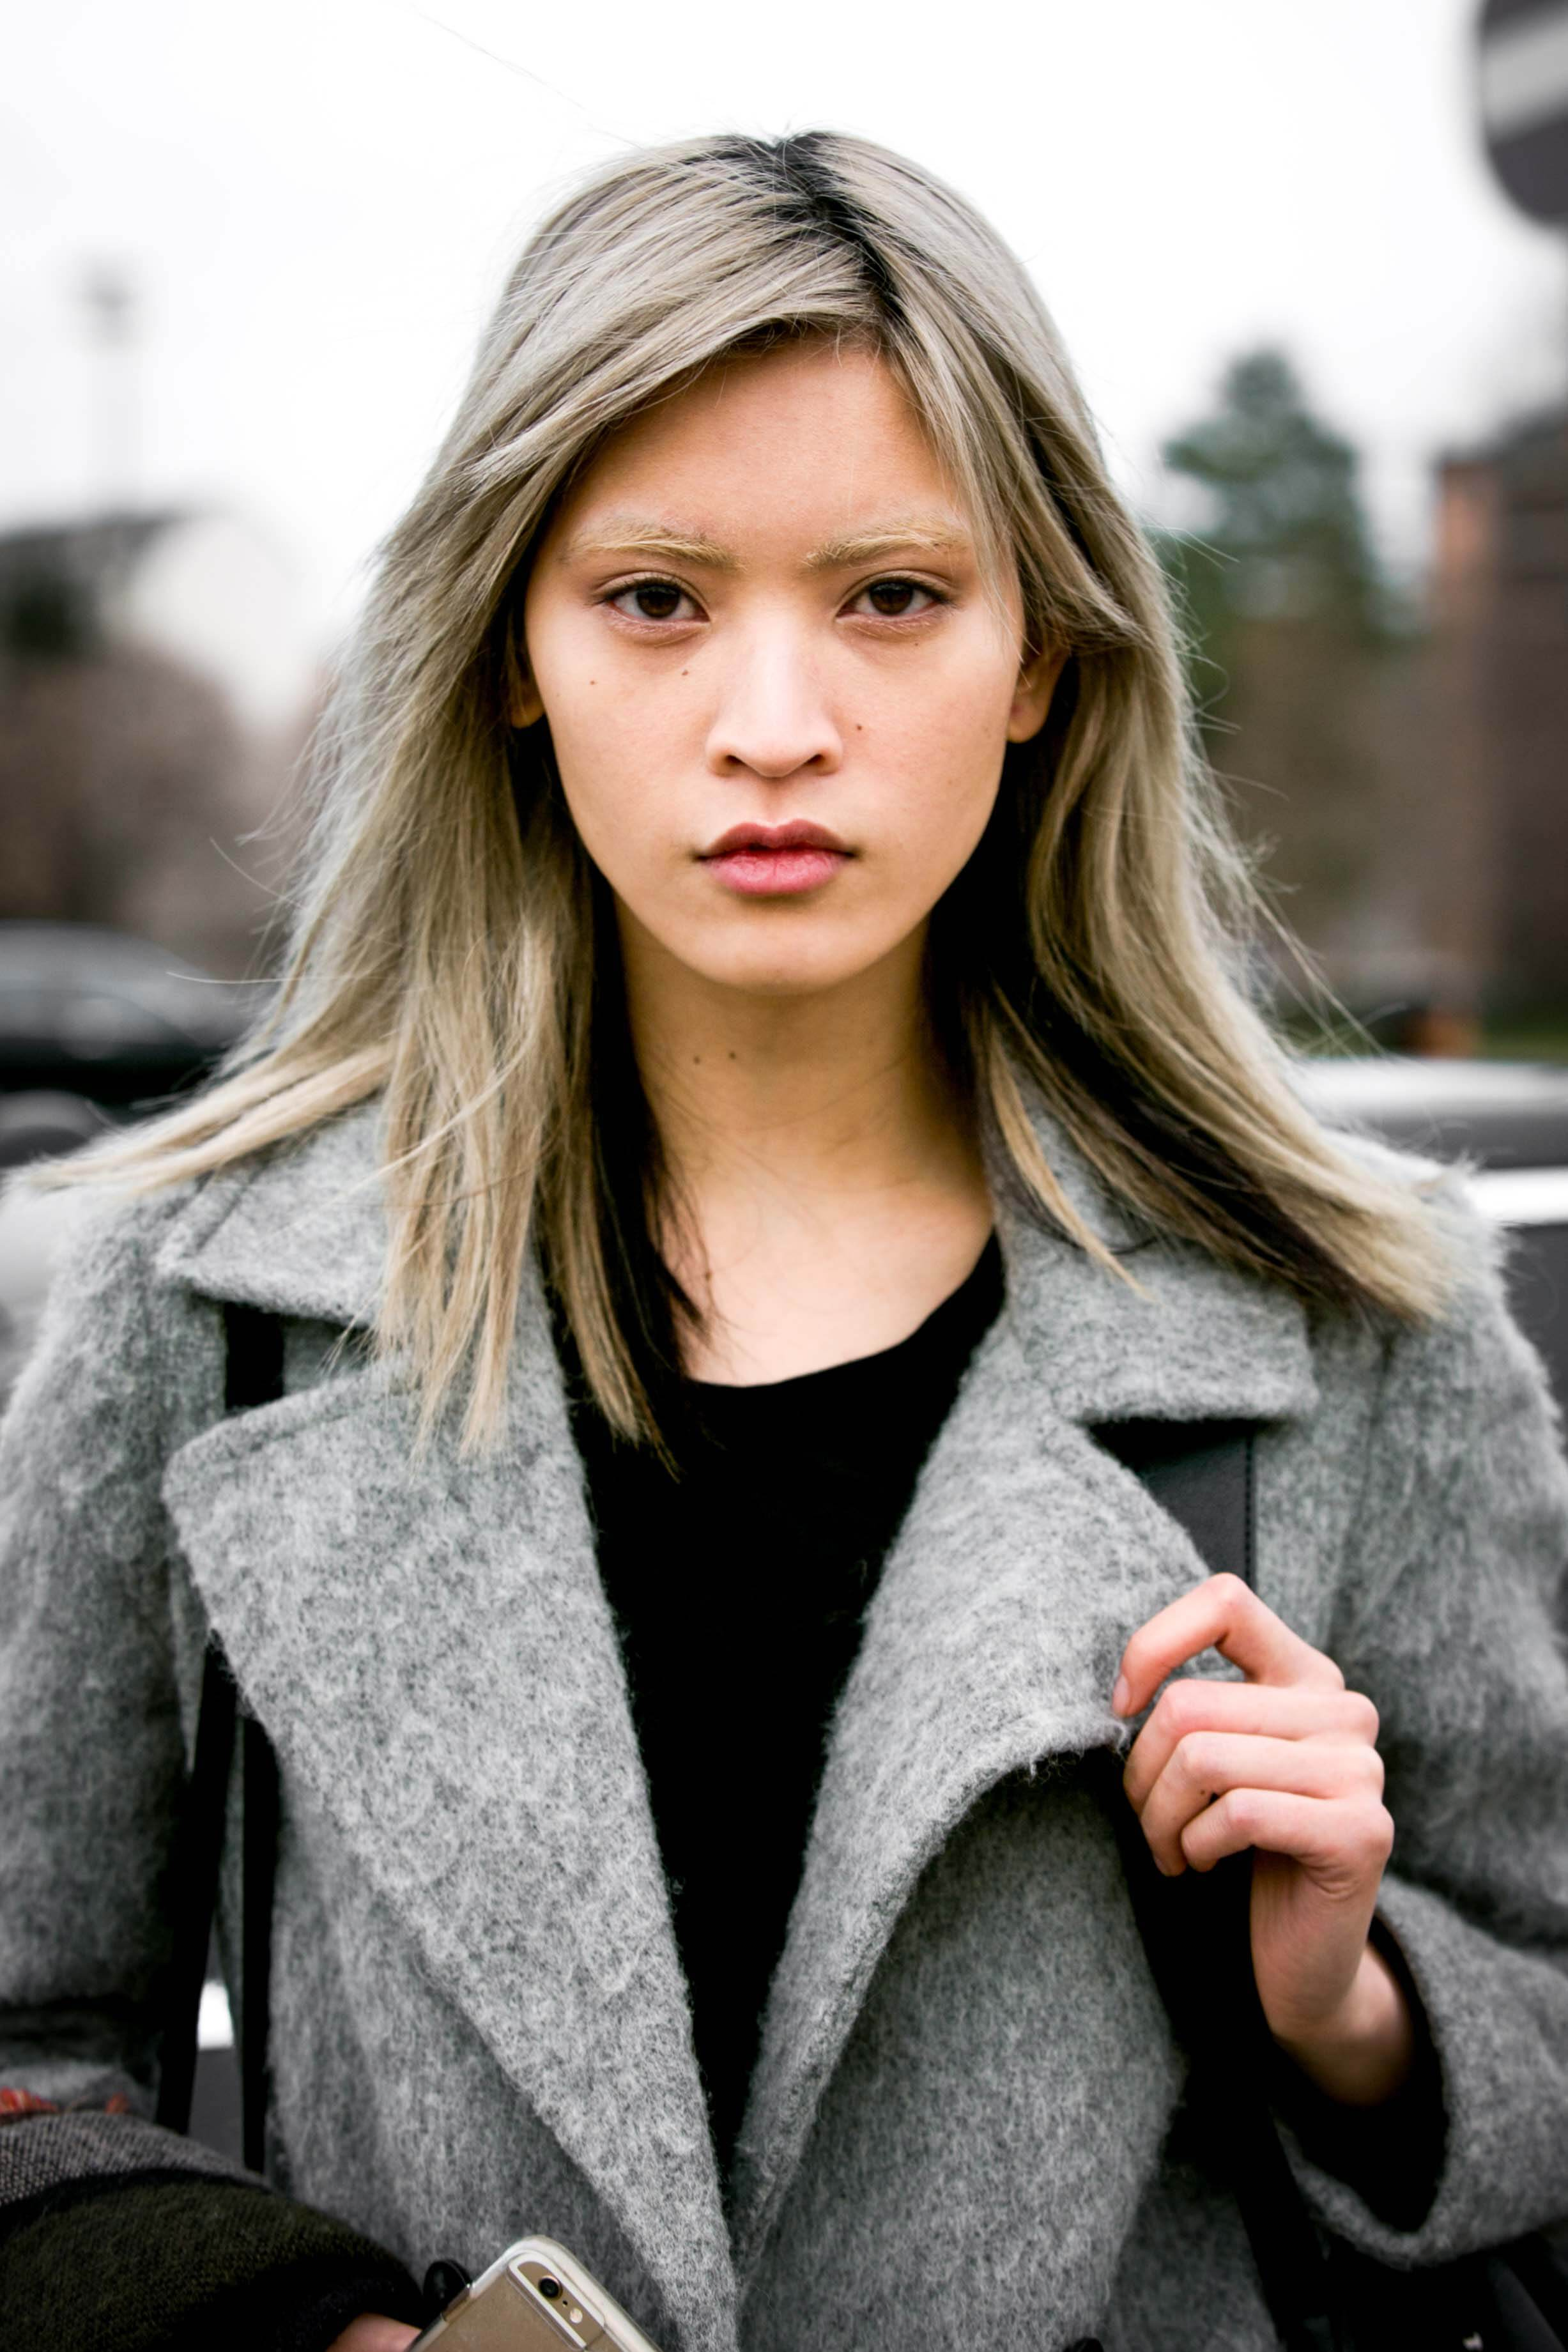 Silver shampoo: Fashion week street style picture of an Asian model with shoulder length straight grey hair.